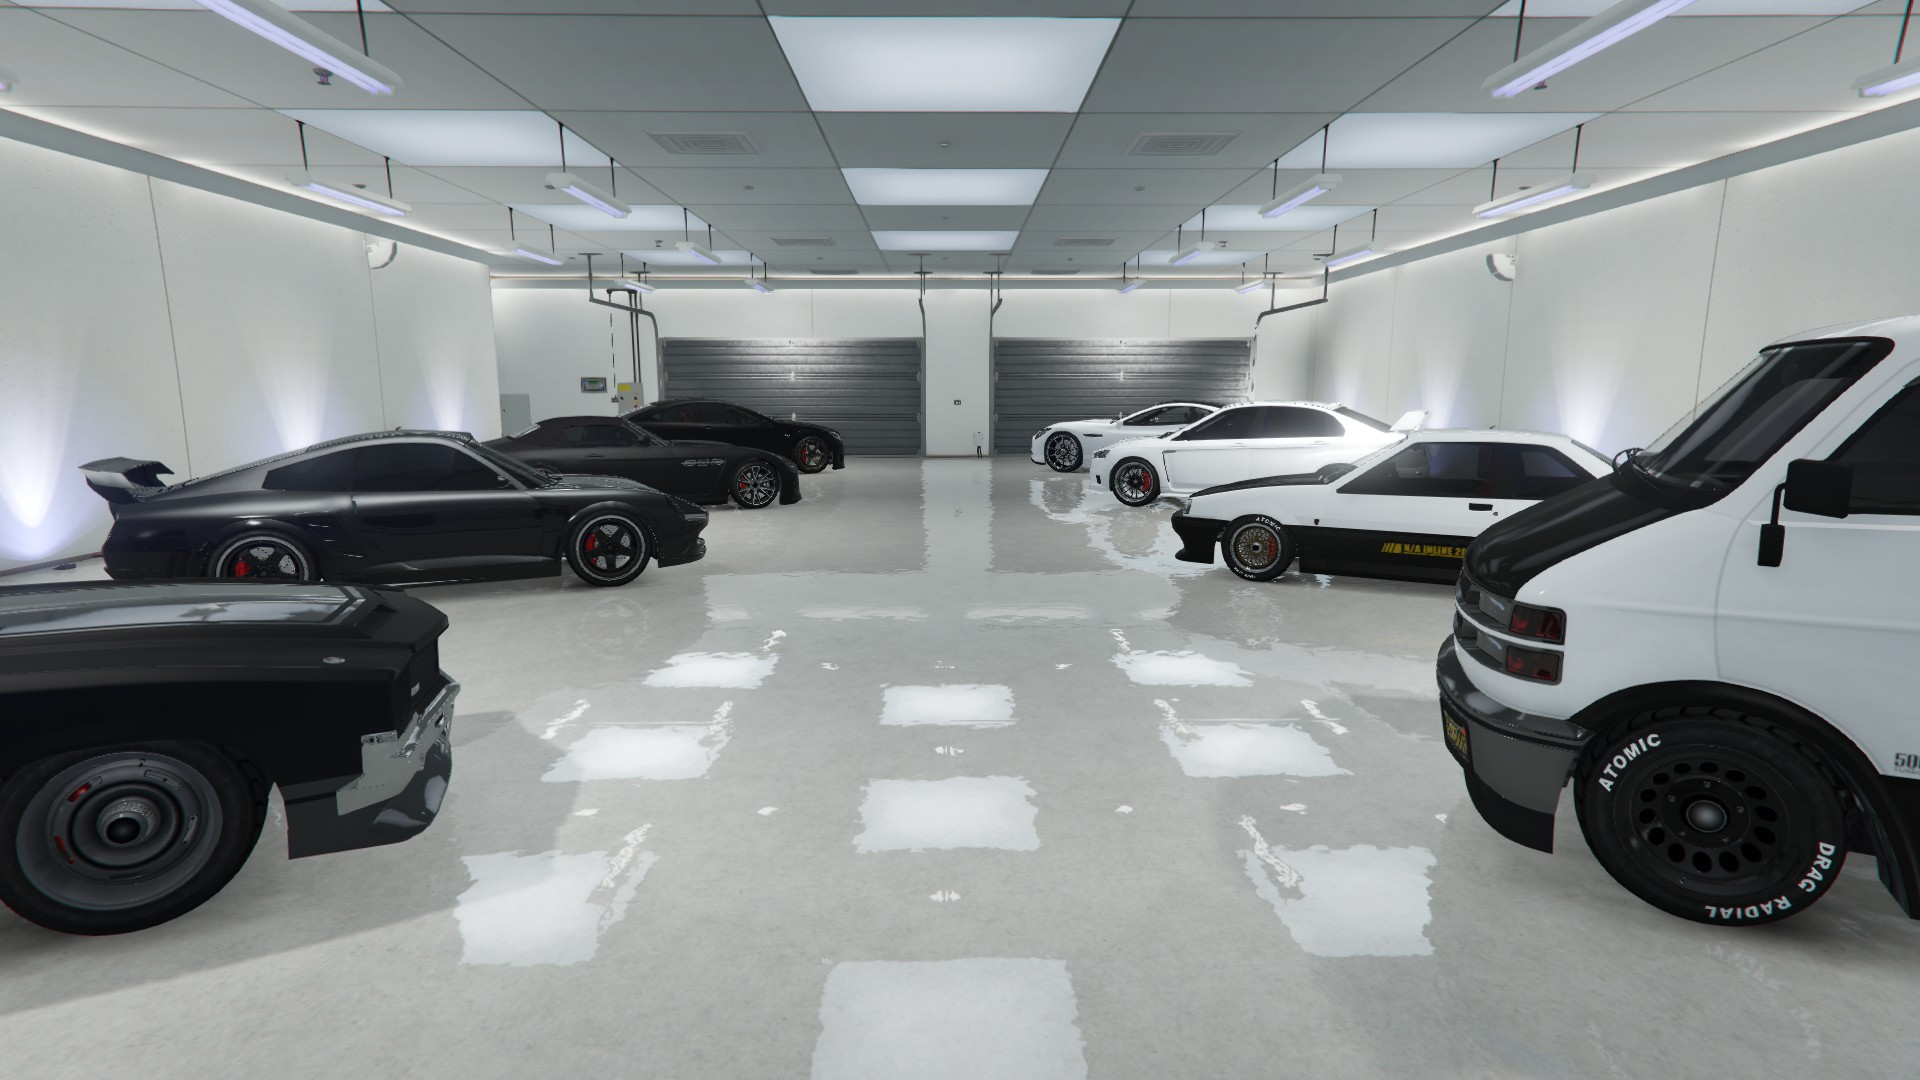 I Just Realised I Only Had Black And White Cars In My Gta